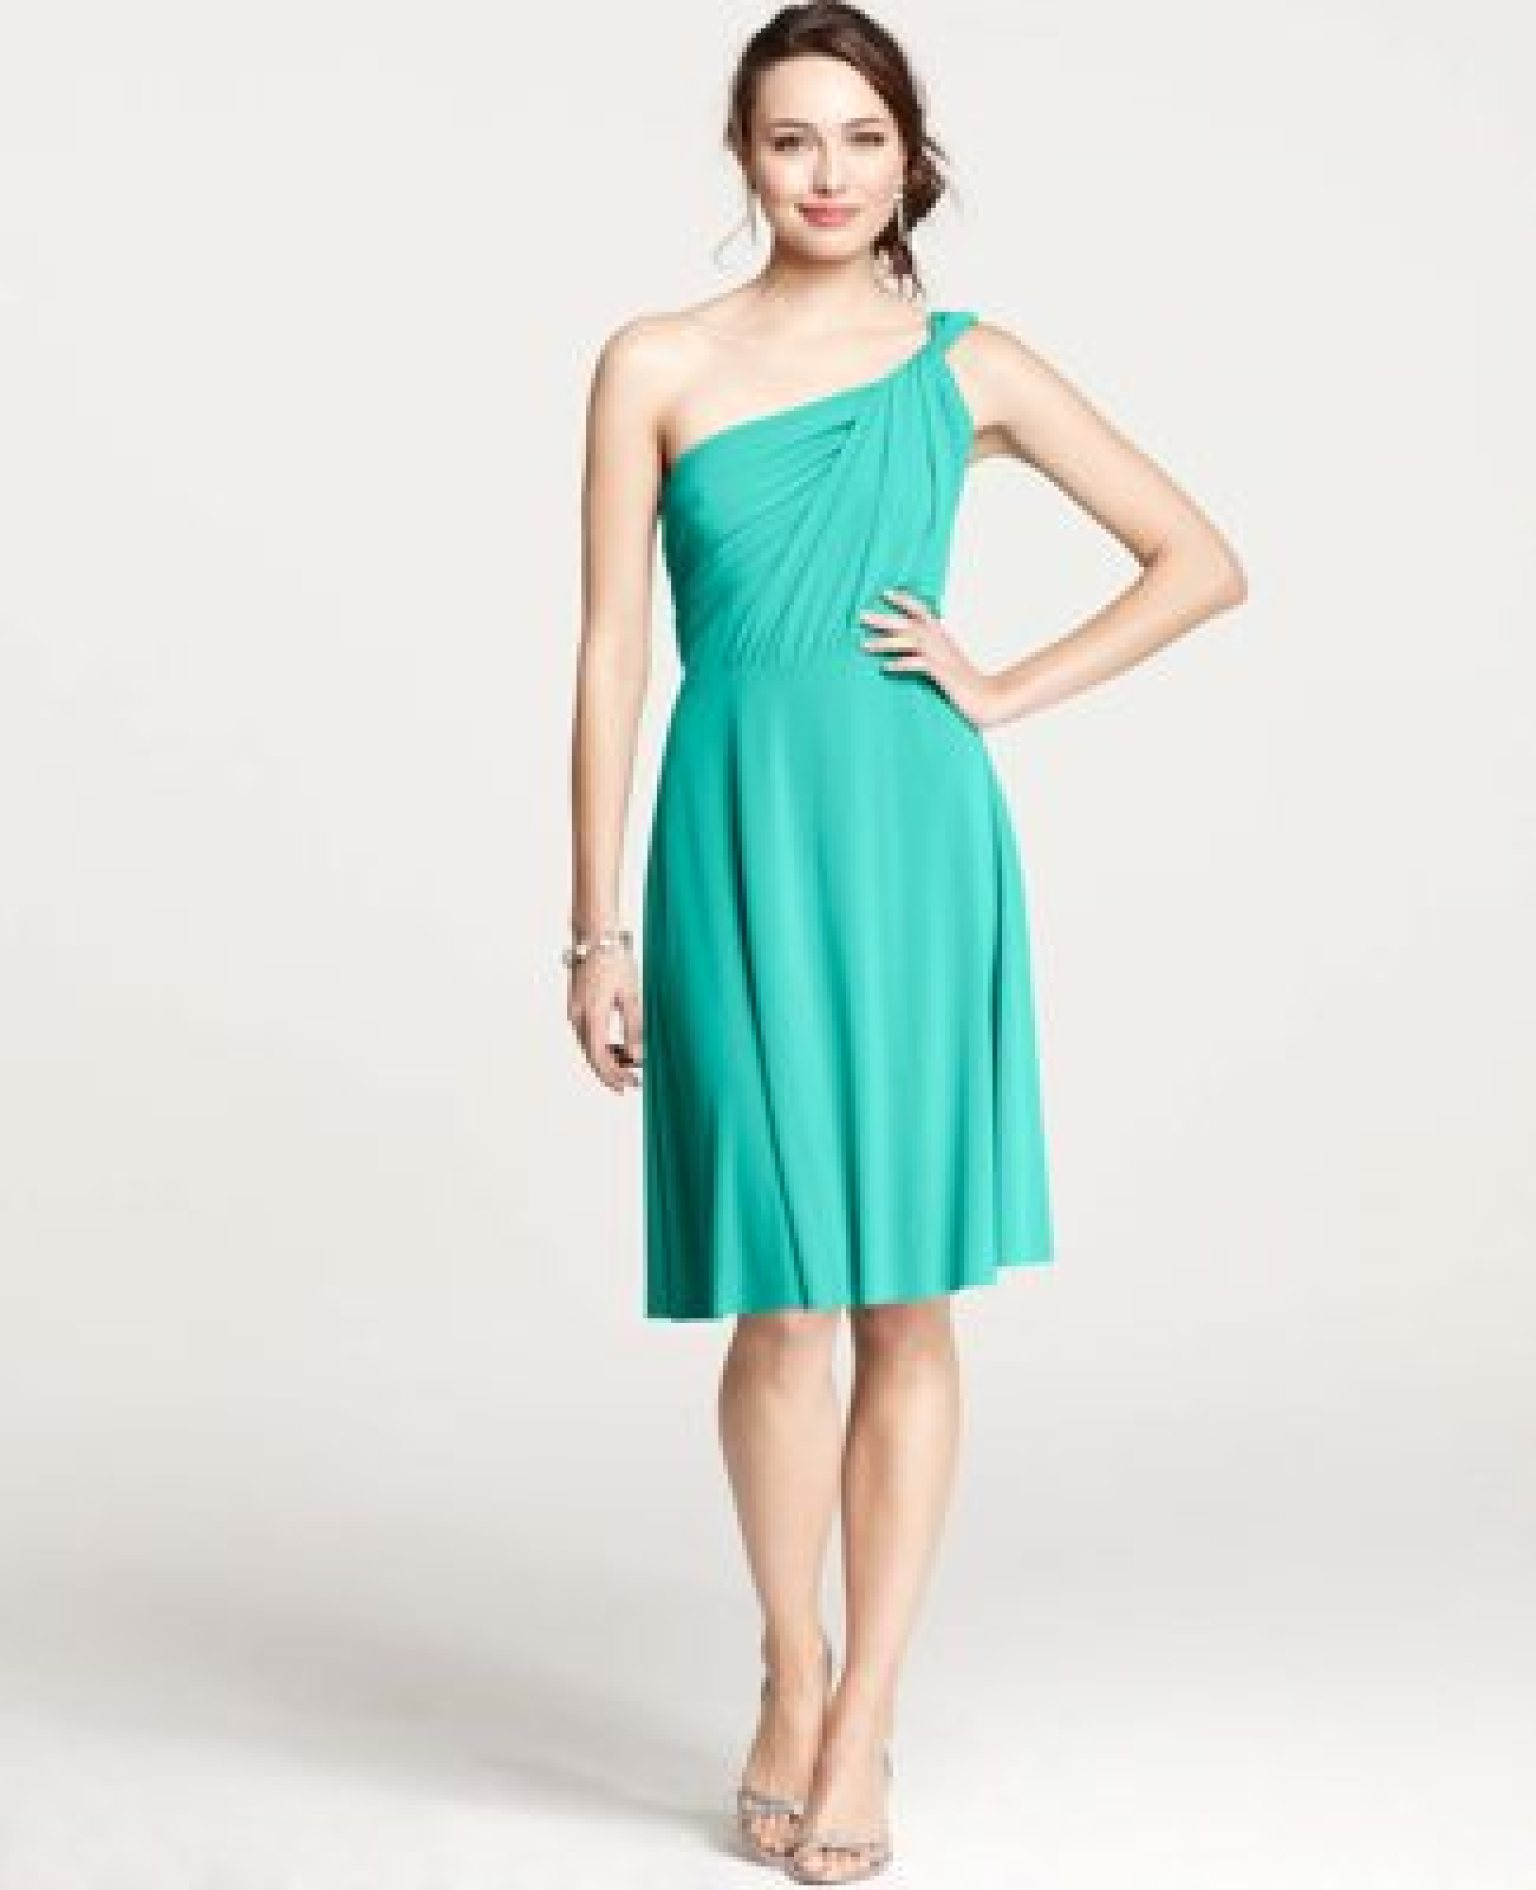 Wedding guest dresses for summer affairs photos huffpost for Dresses for weddings guest summer